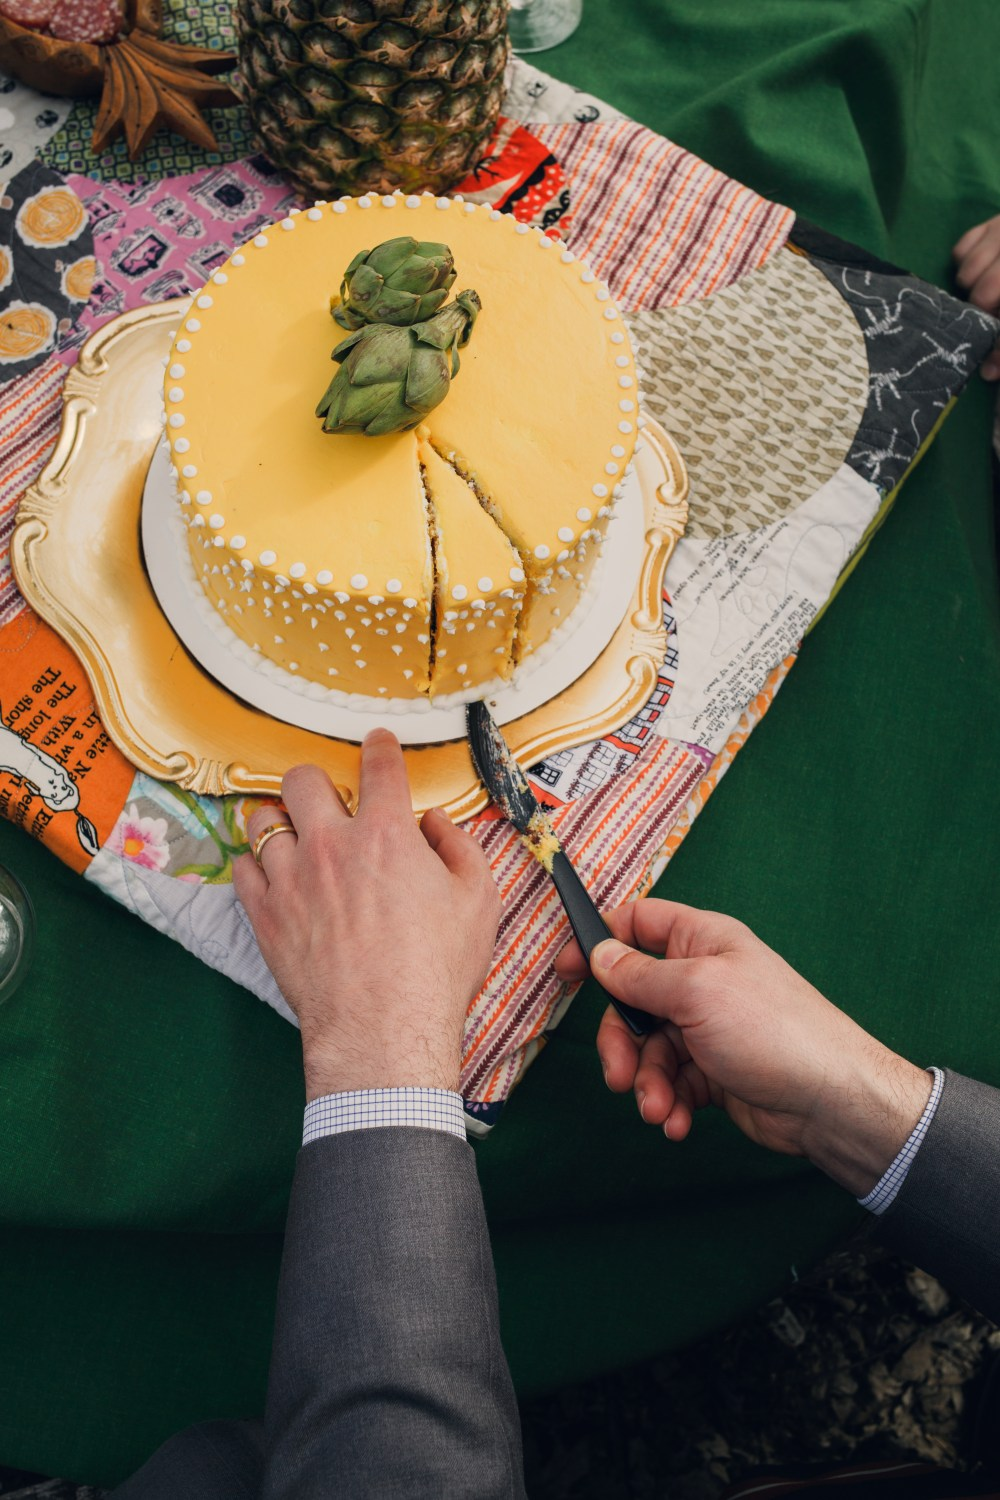 wes anderson styled wedding shoot with yellow 1960's cake